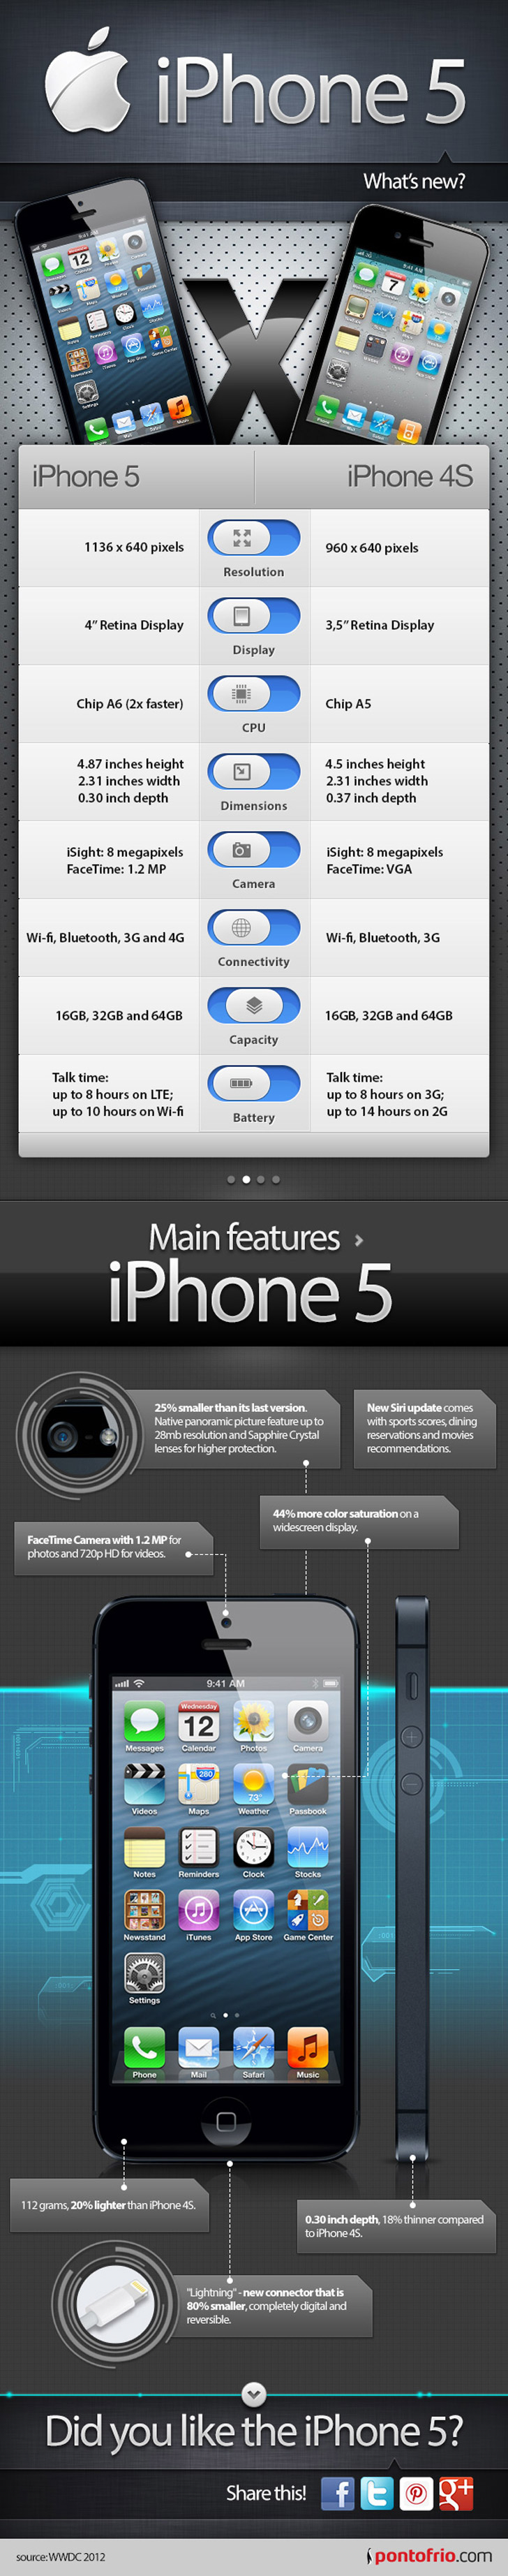 iPhone 5 vs iPhone 4S nfographic